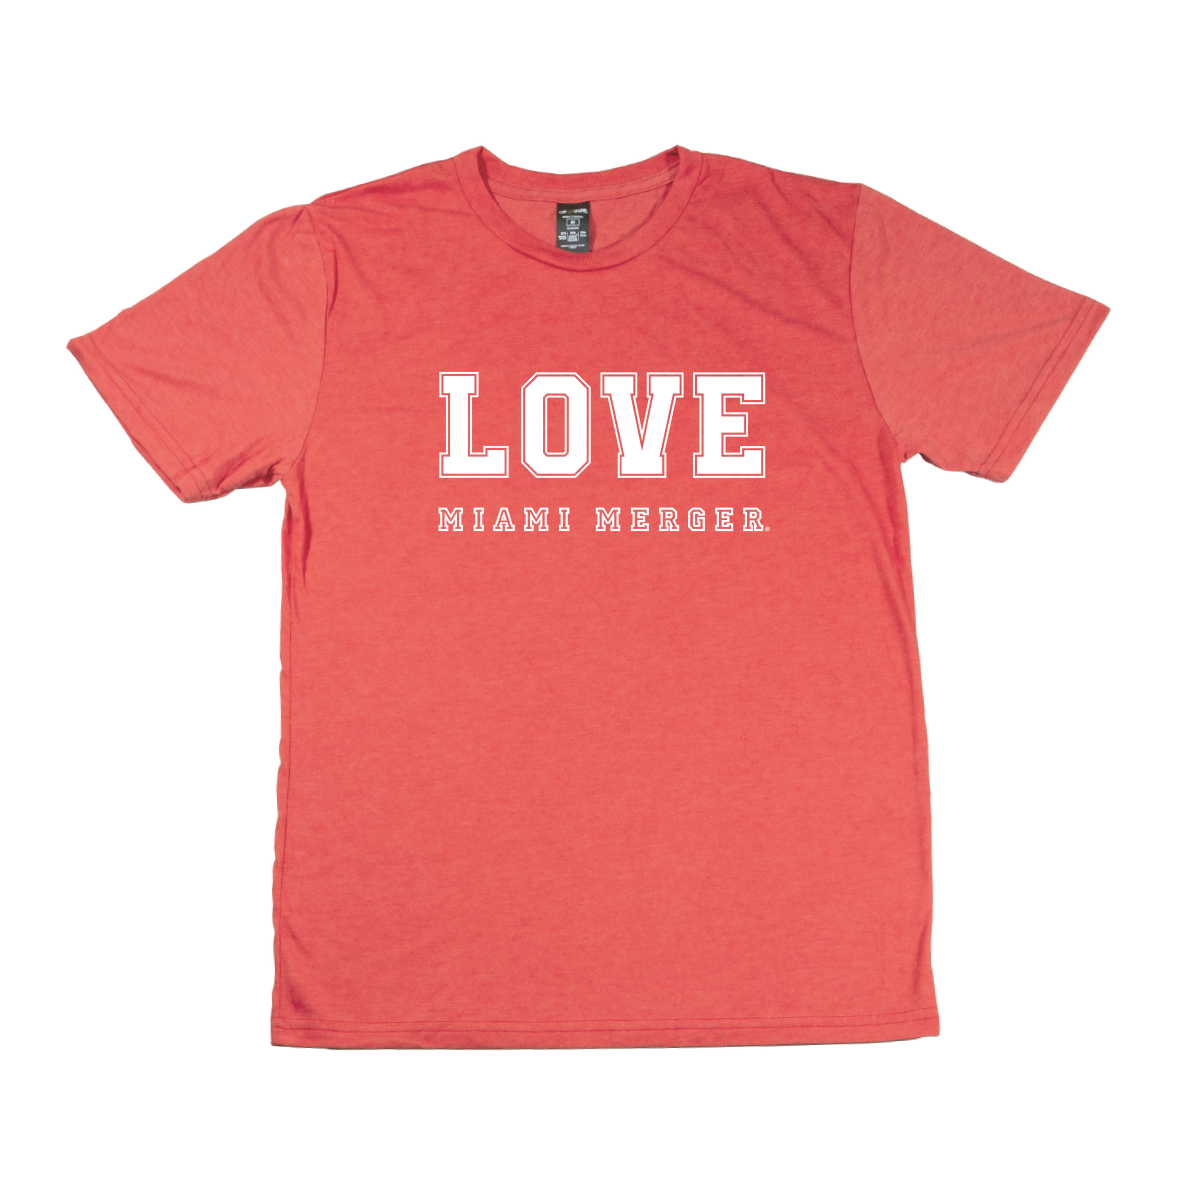 MIAMI UNIVERSITY Redhawks Miami Merger LOVE Crewneck Tee